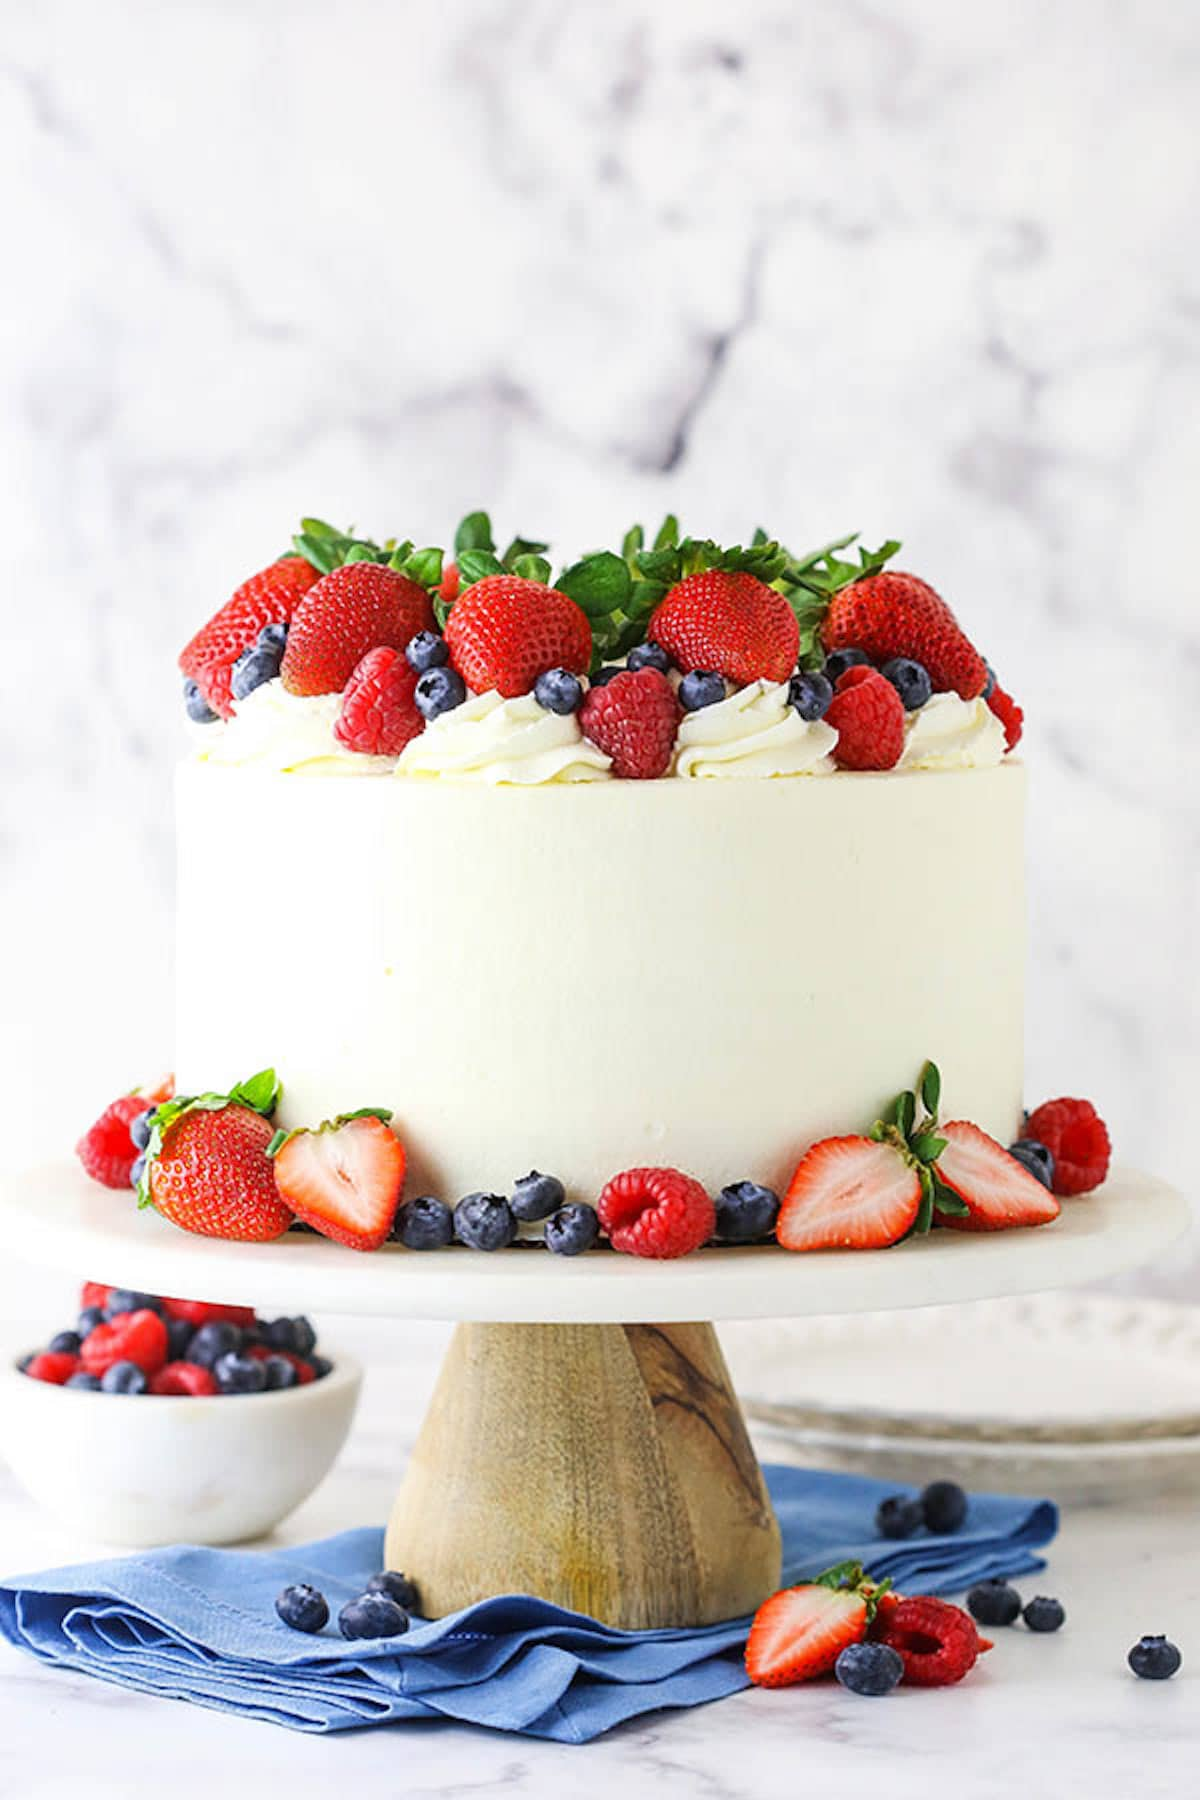 A Berry Chantilly Layer Cake on a Wooden Cake Stand Next to a Bowl of Berries and a Stack of Paper Plates